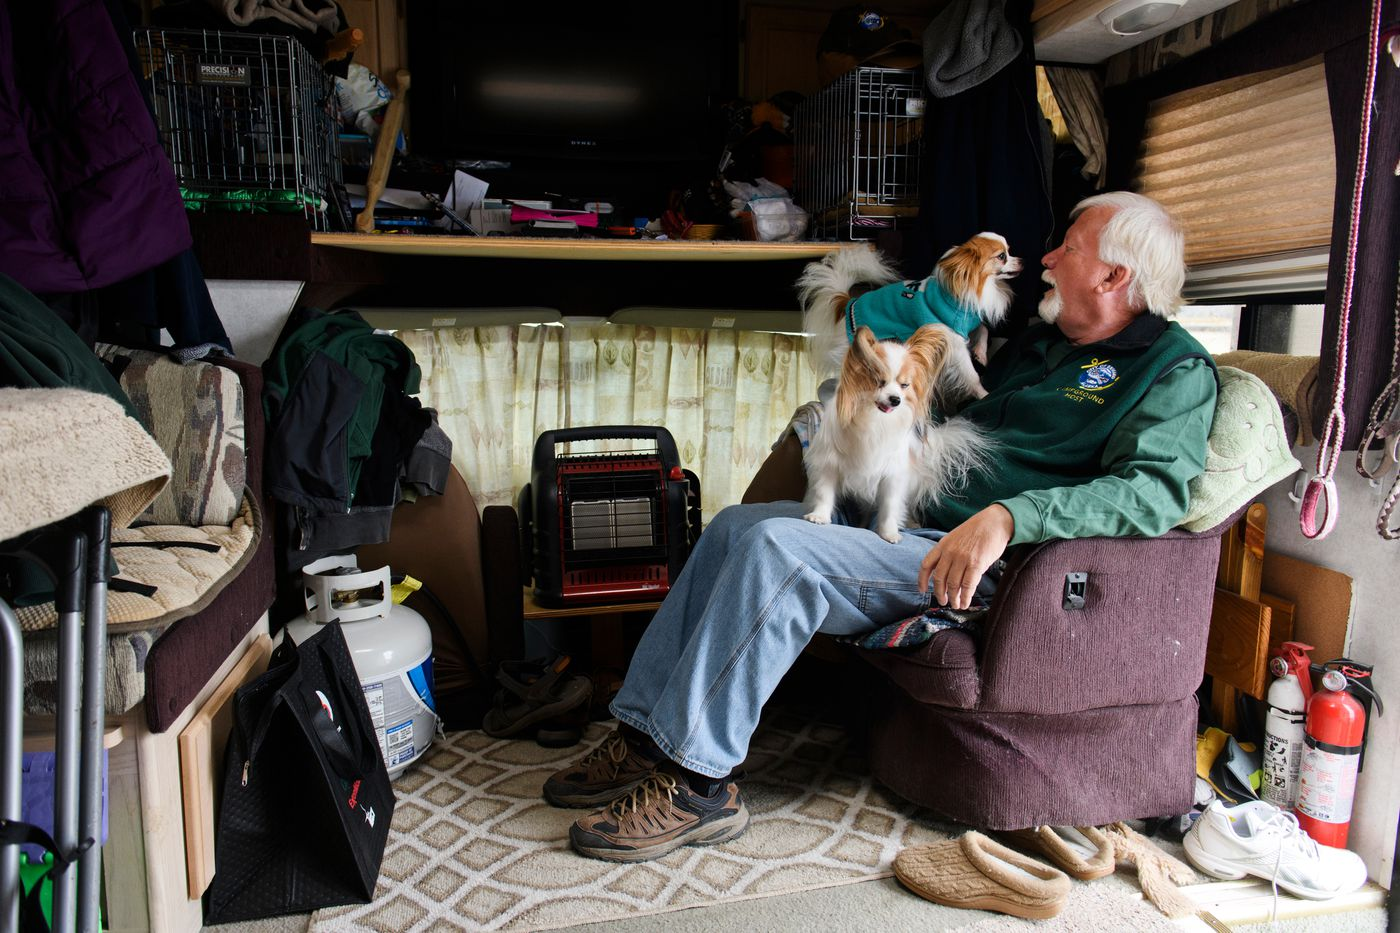 Tim Foster has been camping in Seward since he was a child. Now he's a campground host who stays in an RV with his dogs for several months each year. (Marc Lester / ADN)